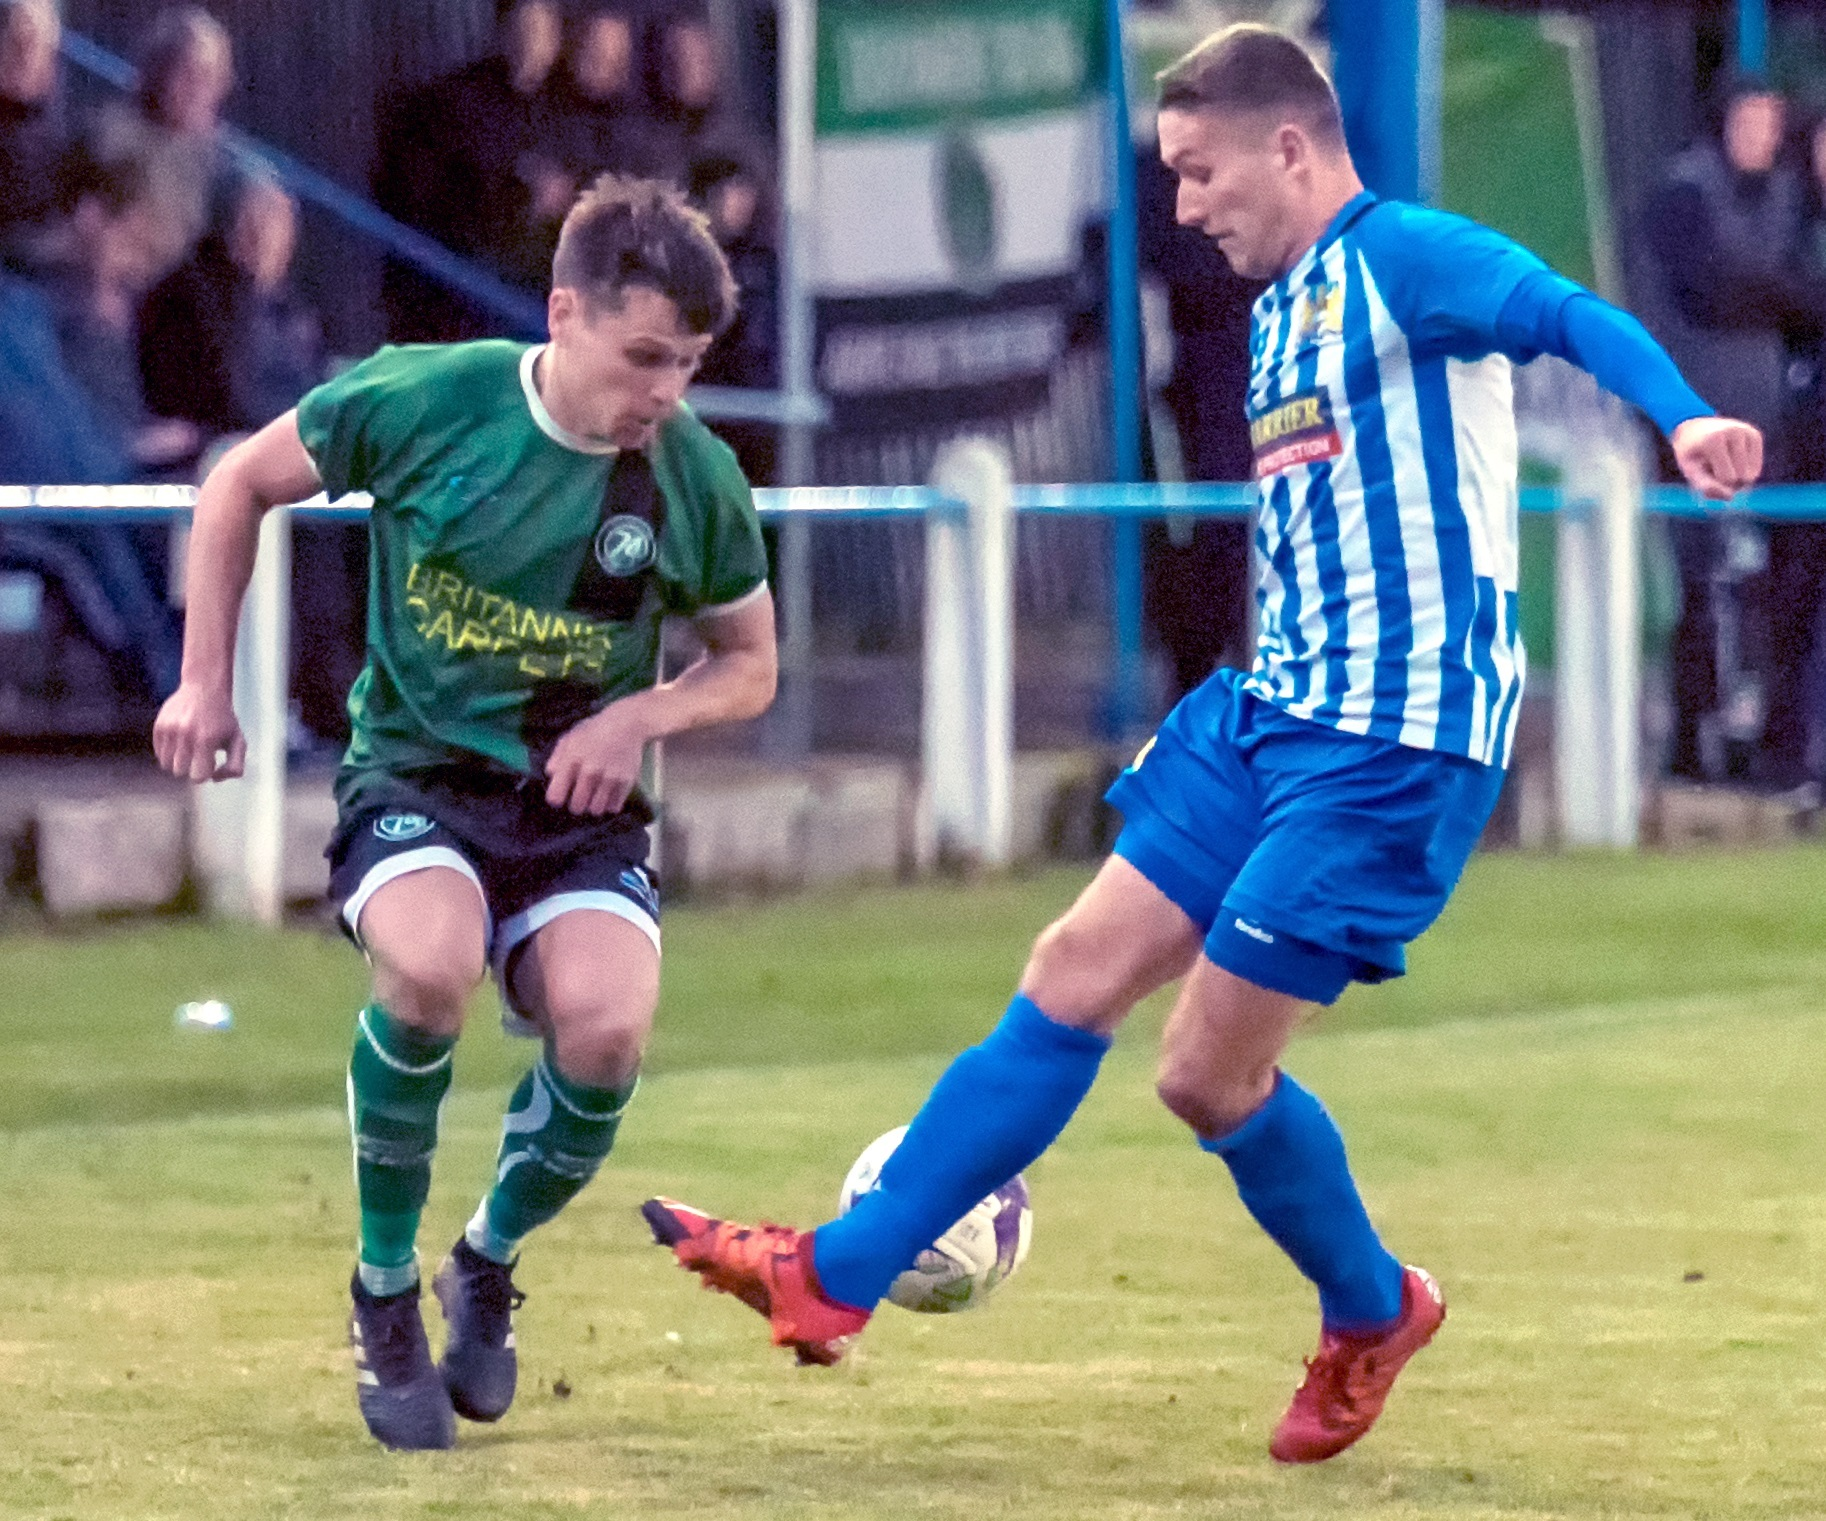 Full-back Paul Connor attempts to escape the attention of a Newcastle Benfield player during an 1874 Northwich attack on Saturday. Picture: Ian Dutton